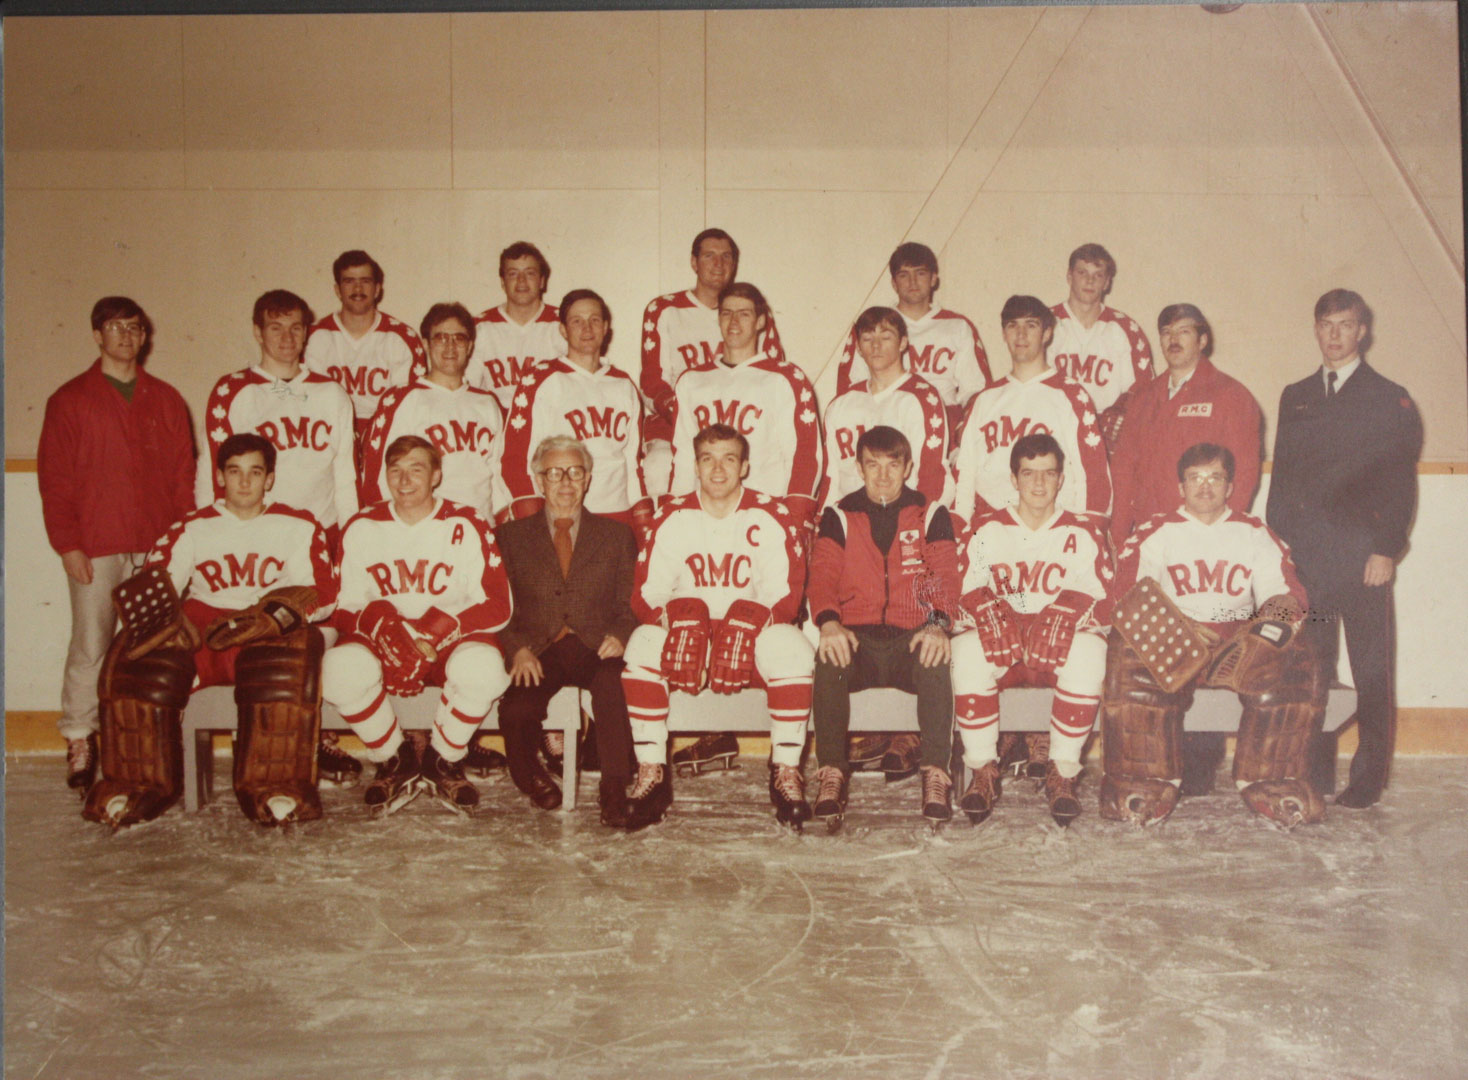 RMC Hockey 1978-79 Picture